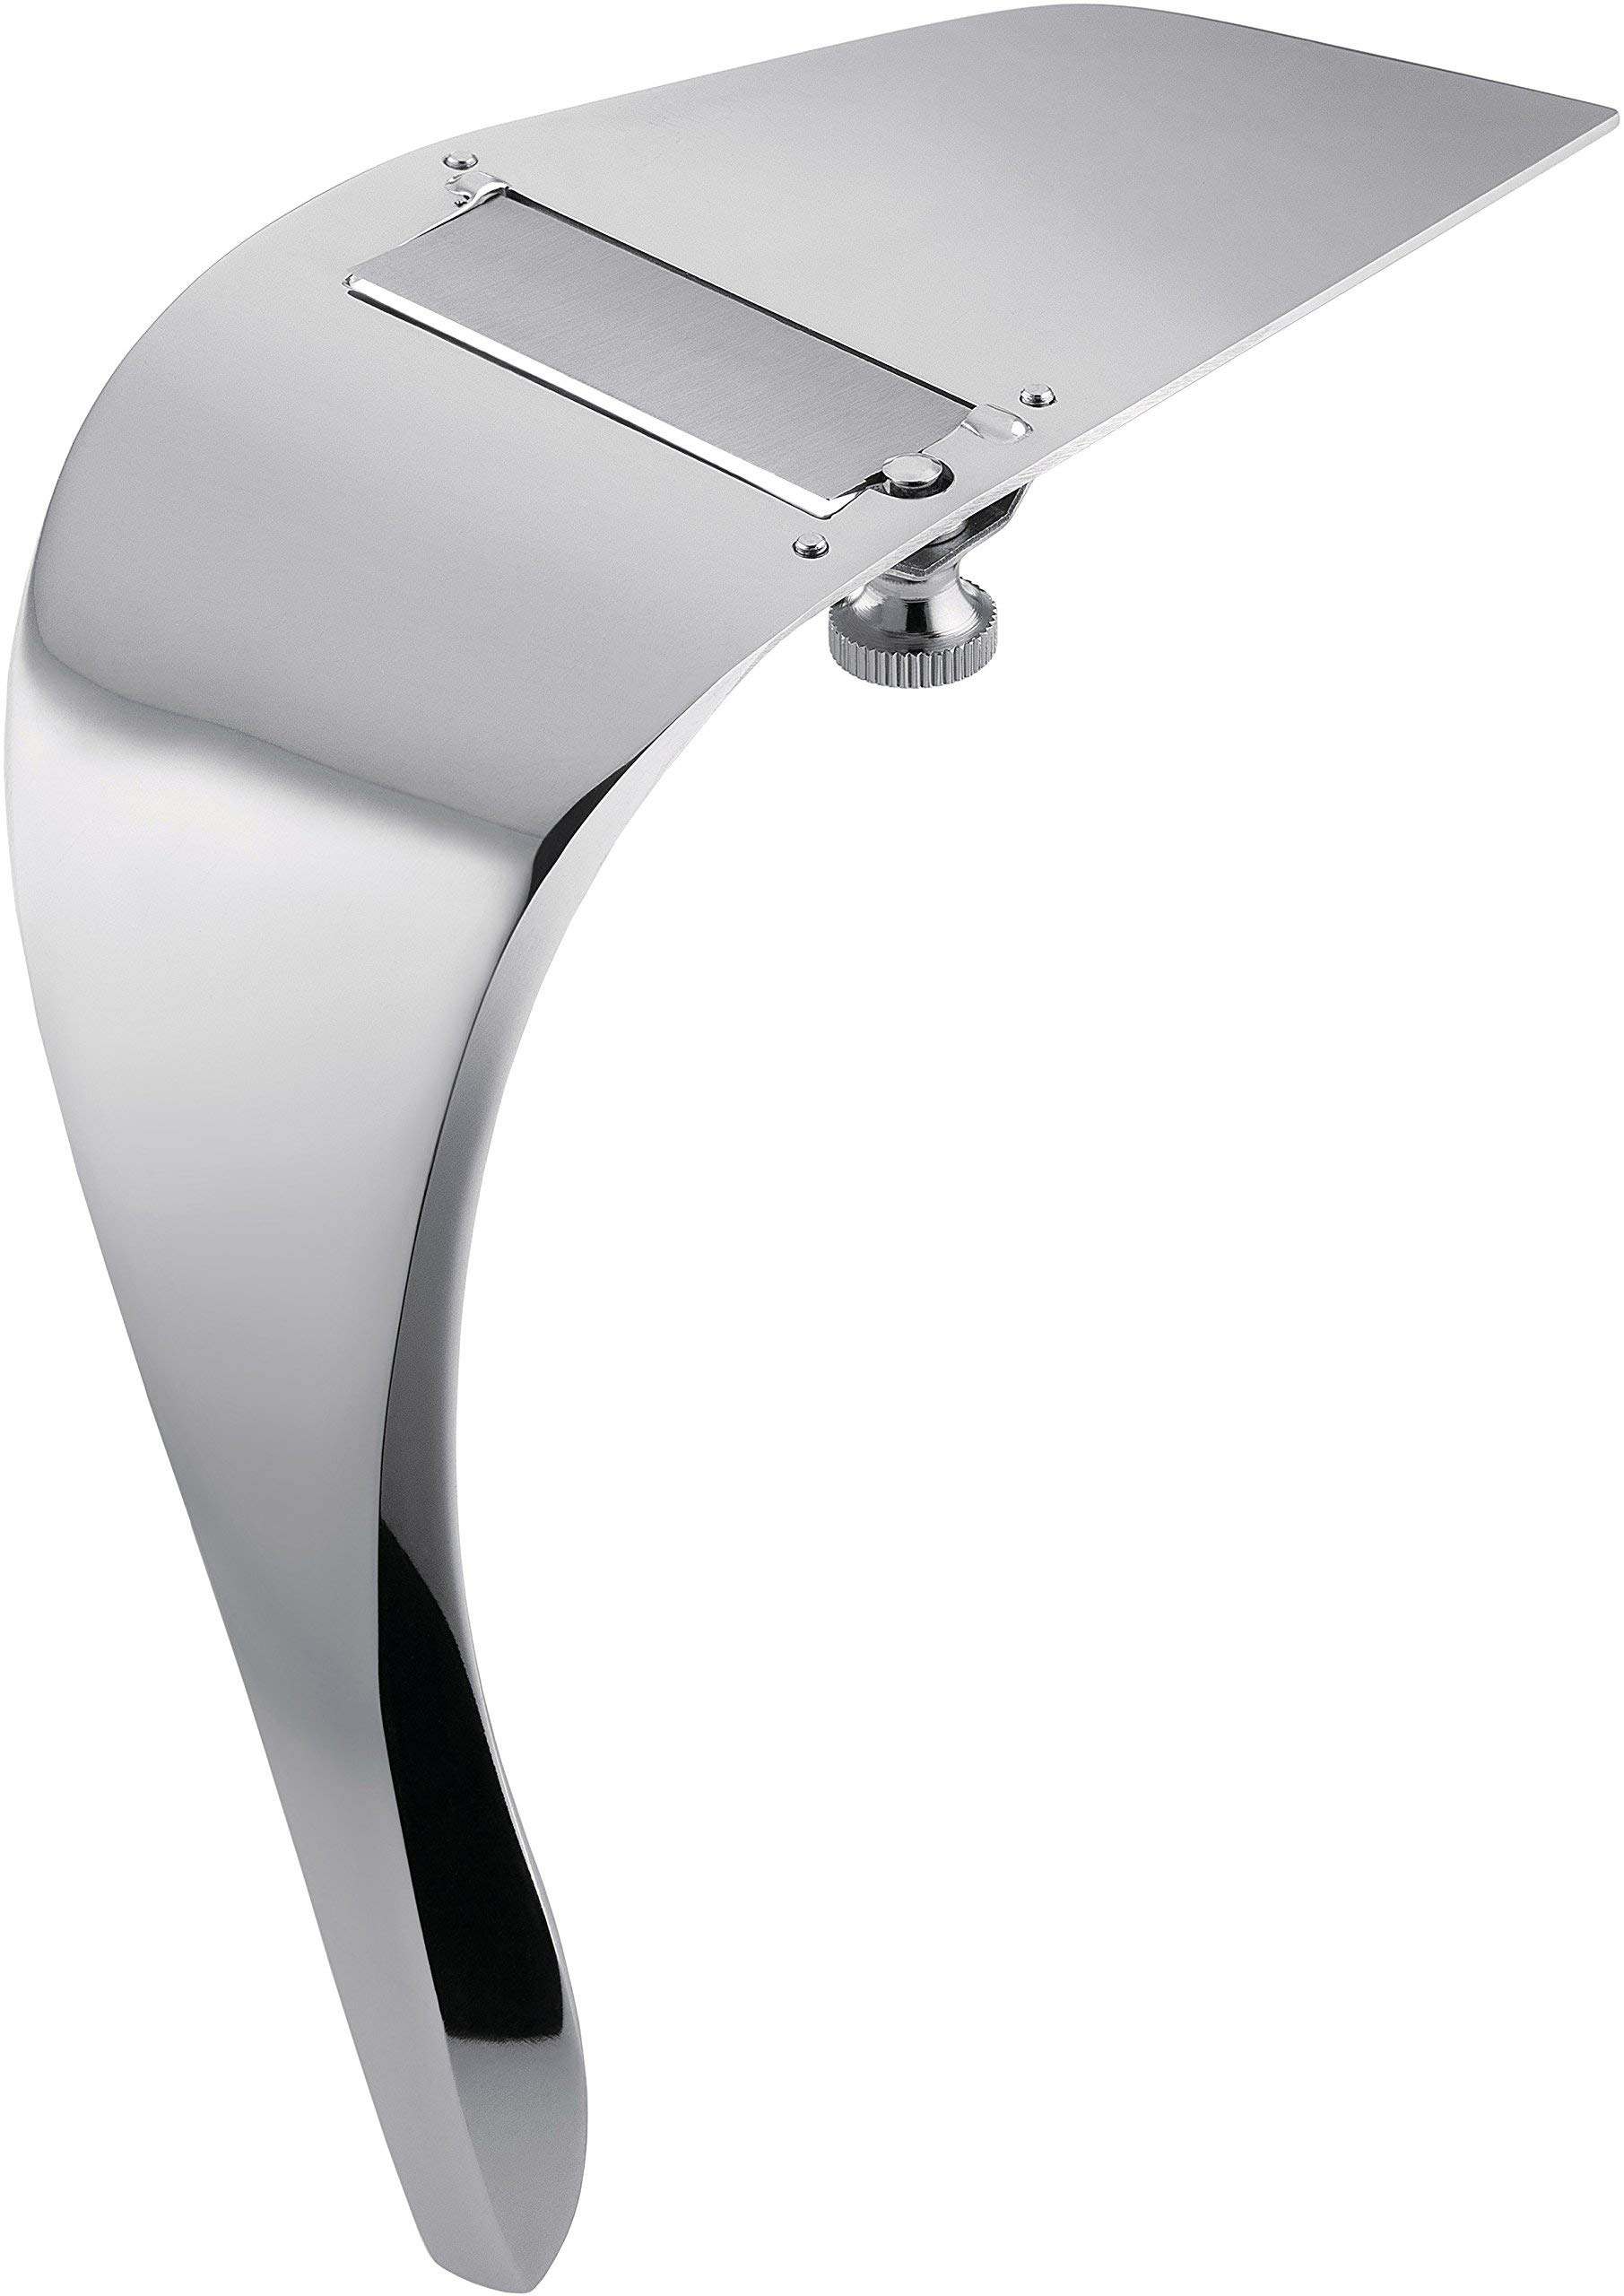 Alessi UNS04 Alba Truffle slicer, One size, steel by Alessi